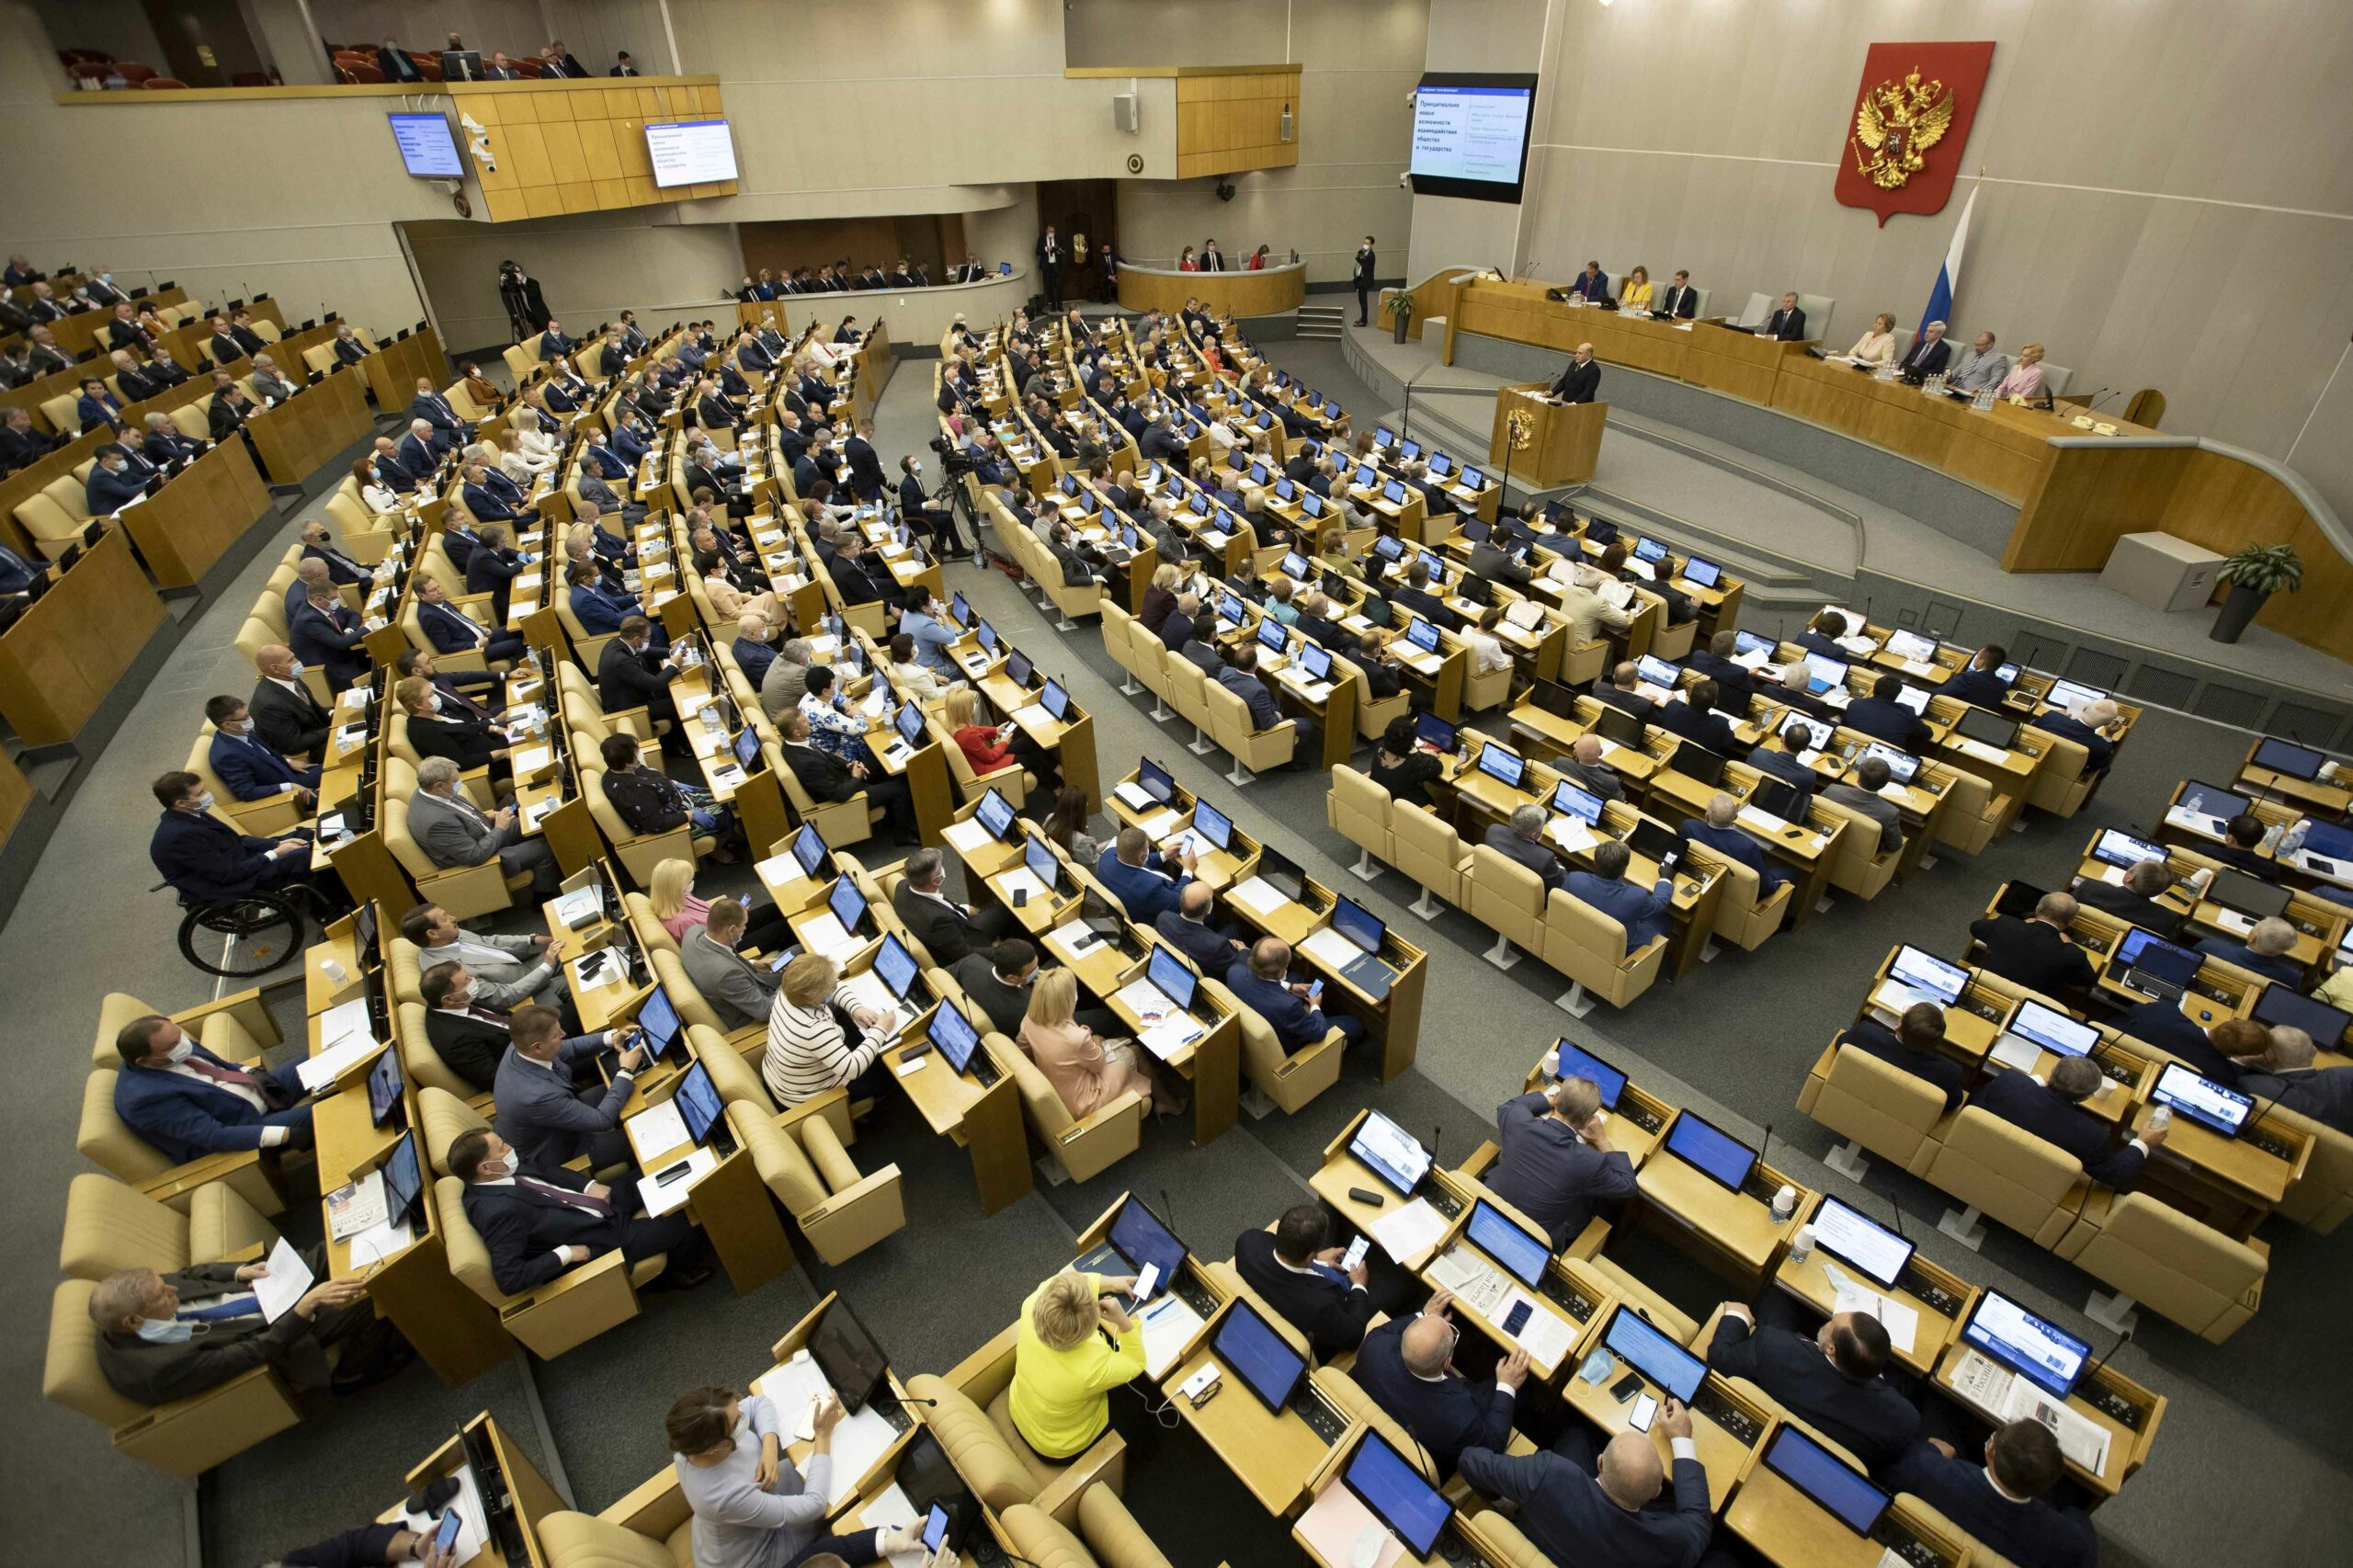 Russia: New Effort to Stifle Independent Groups